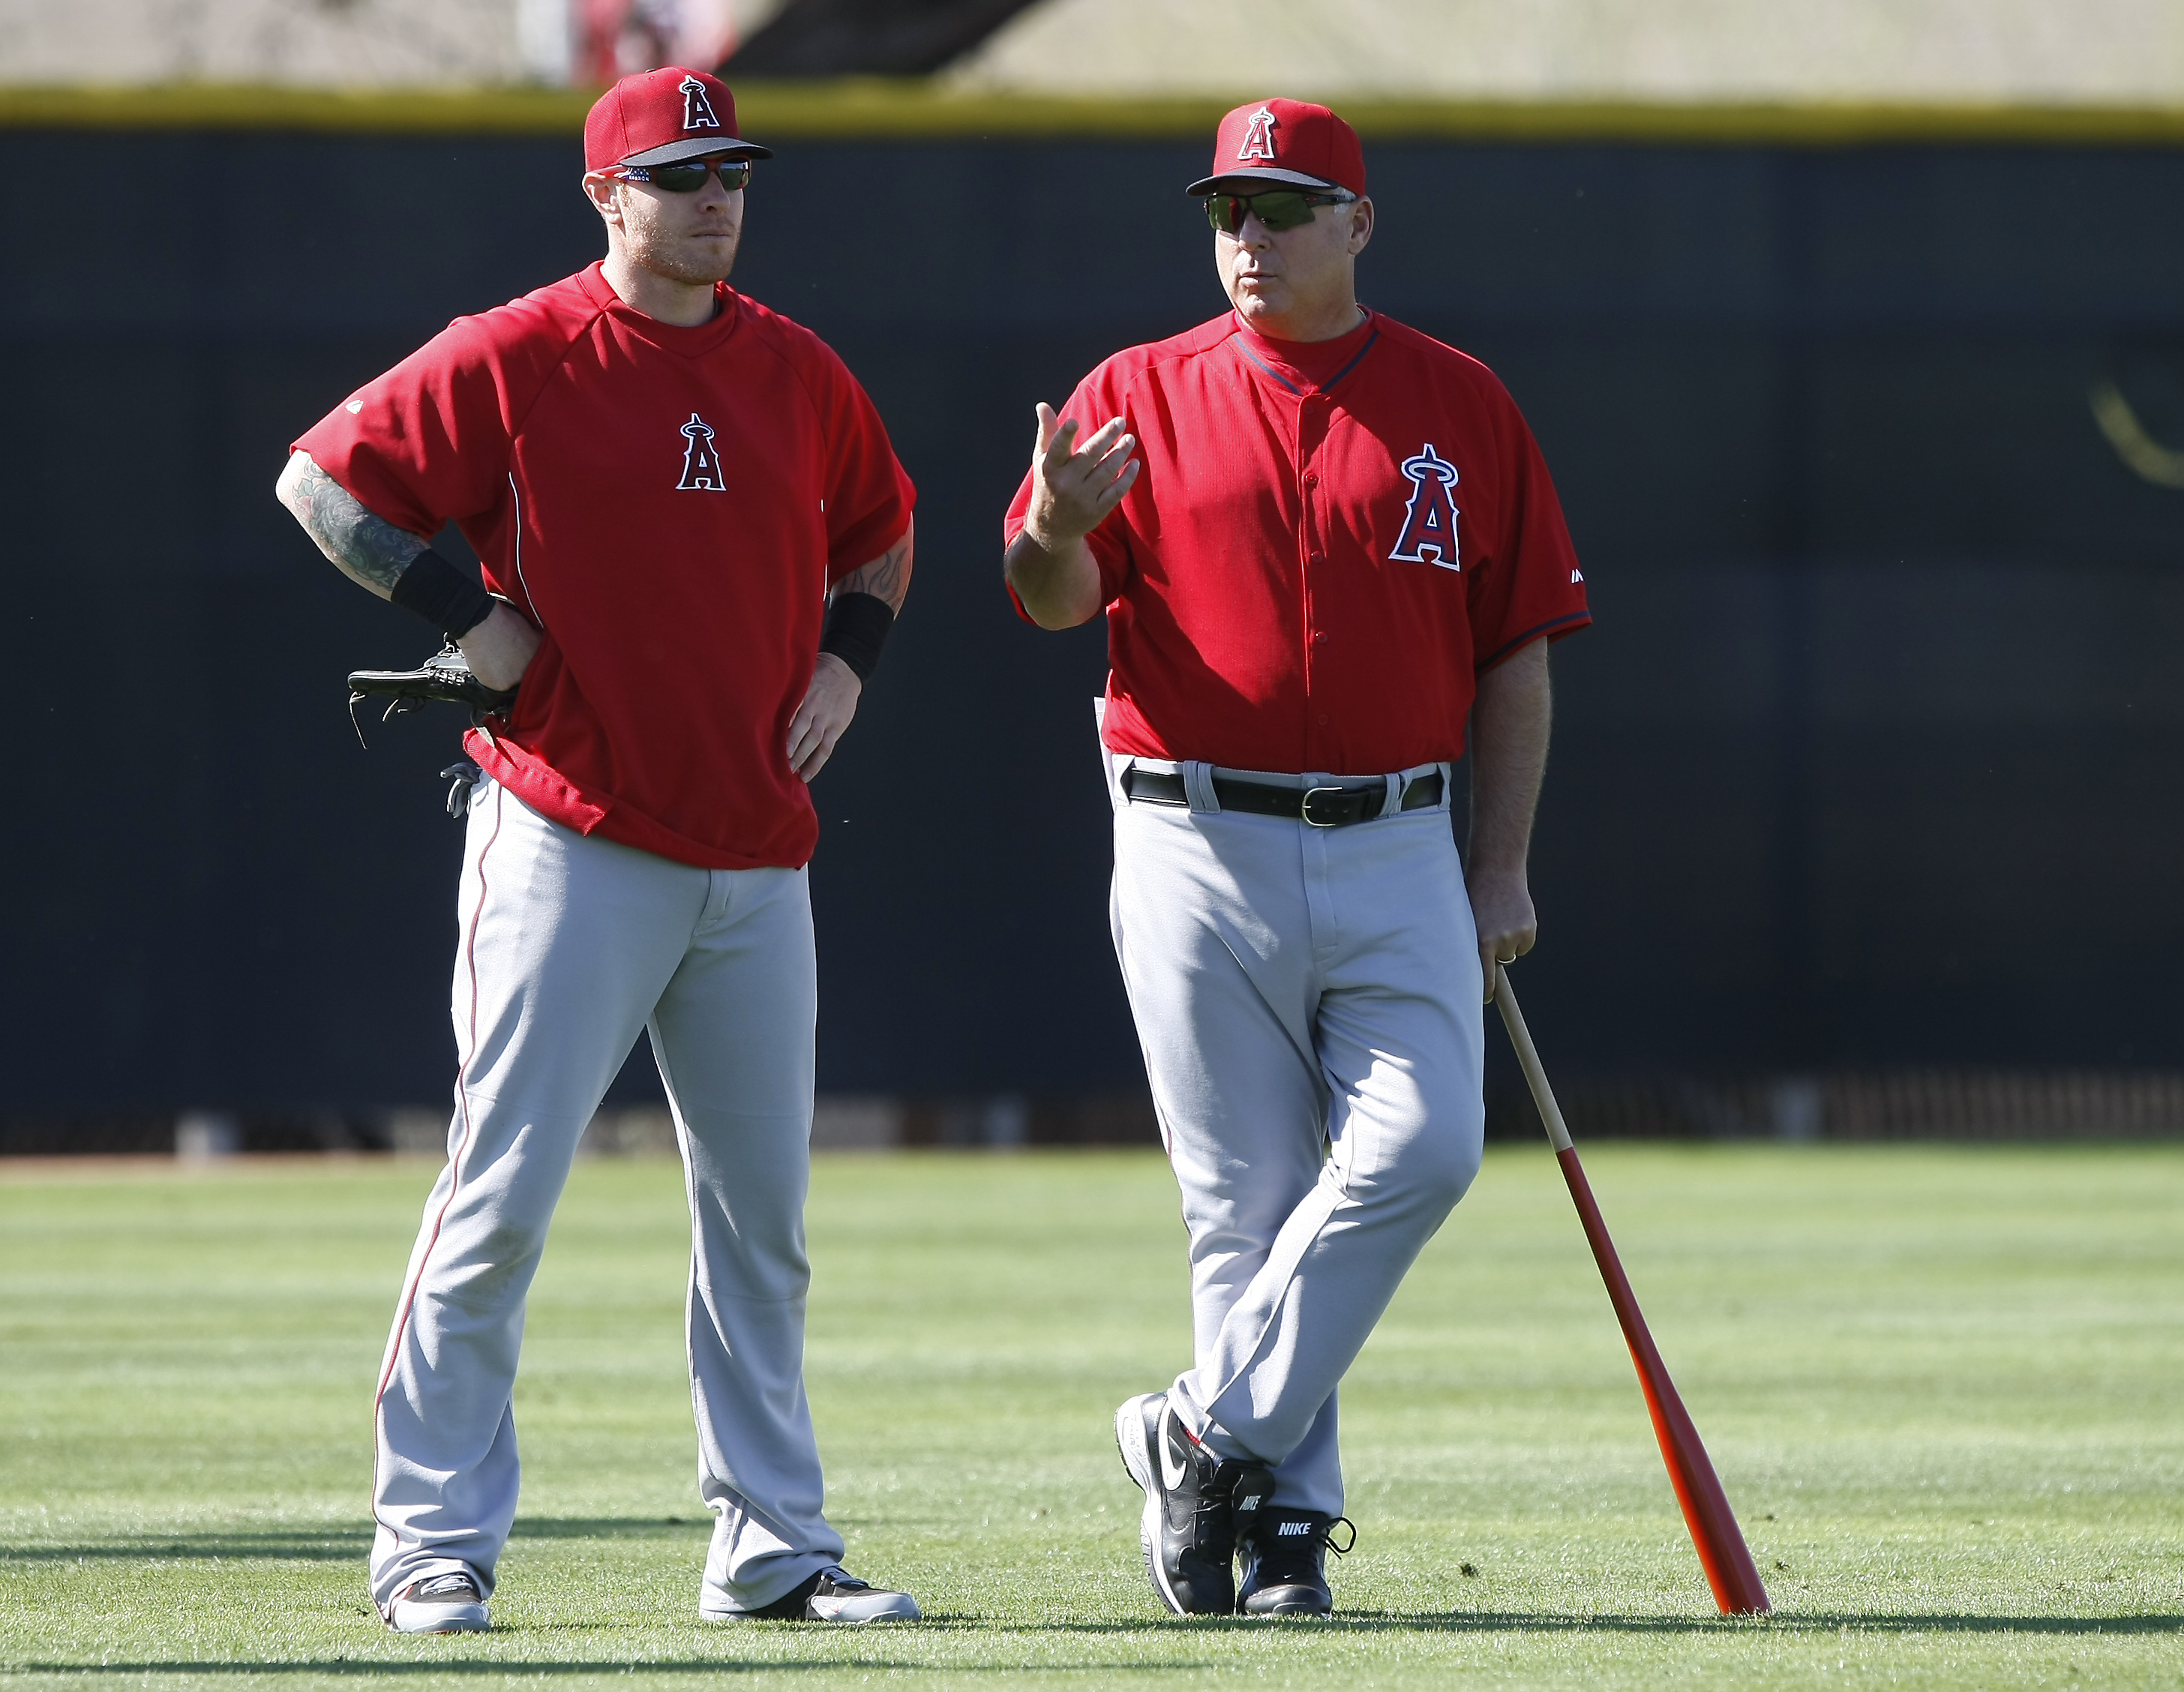 FILE - In this Feb. 20, 2014, file photo,Los Angeles Angels left fielder Josh Hamilton, left, talks to manager Mike Scioscia during spring training baseball practice in Tempe, Ariz. Reports that troubled Los Angeles Angels outfielder Josh Hamilton might b